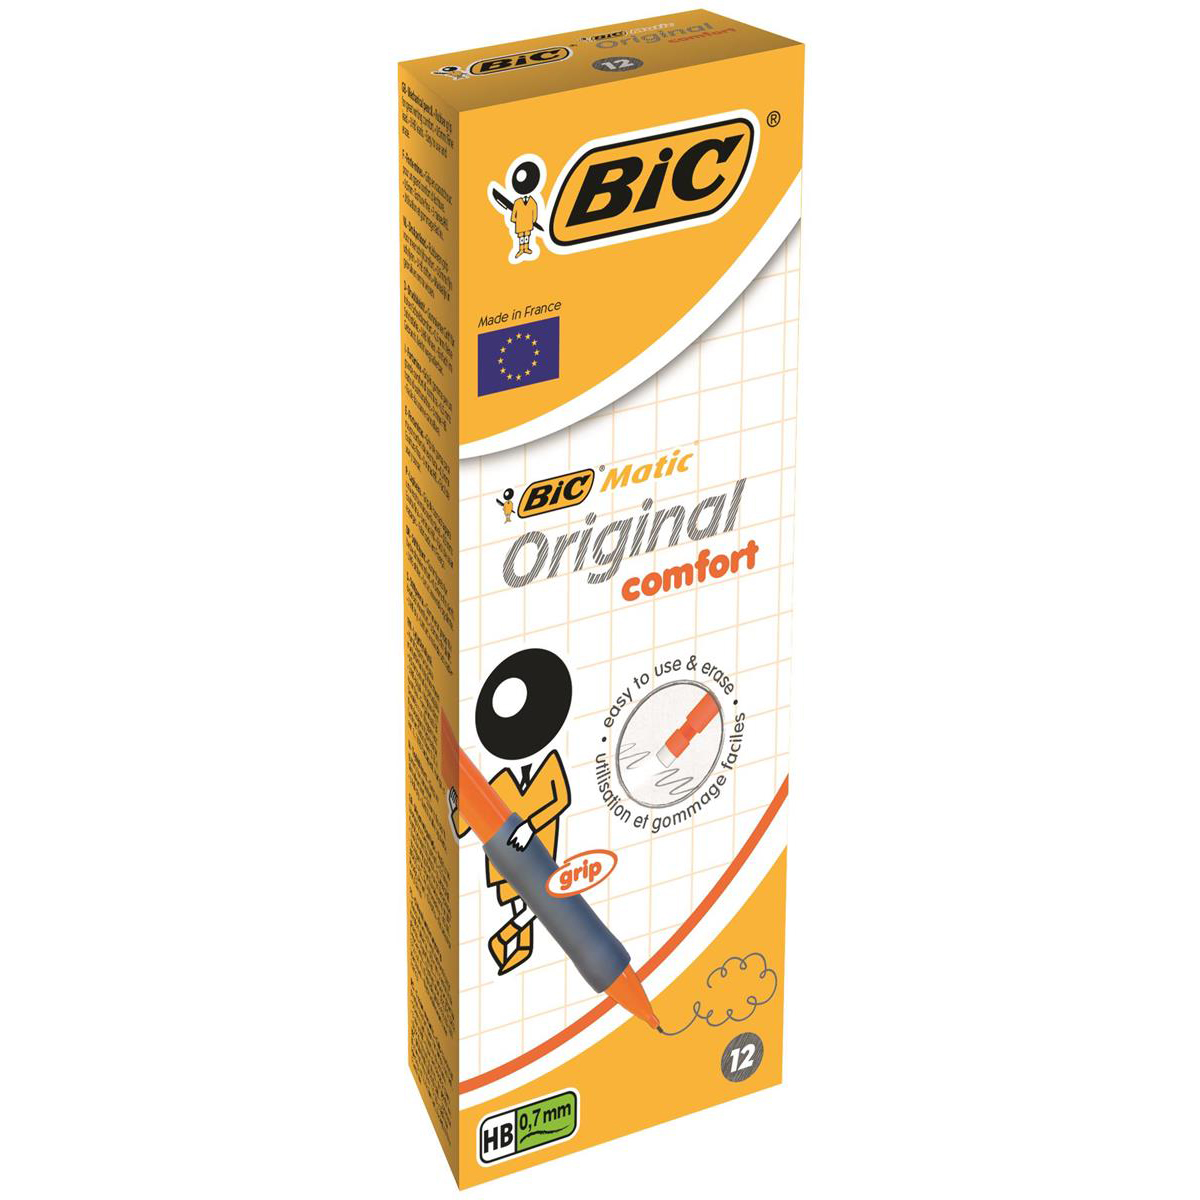 Bic Matic Grip Mechanical pencil with Eraser 3 x HB 0.7mm Lead Assorted Colour Grips Ref 890284 [Pack 12]